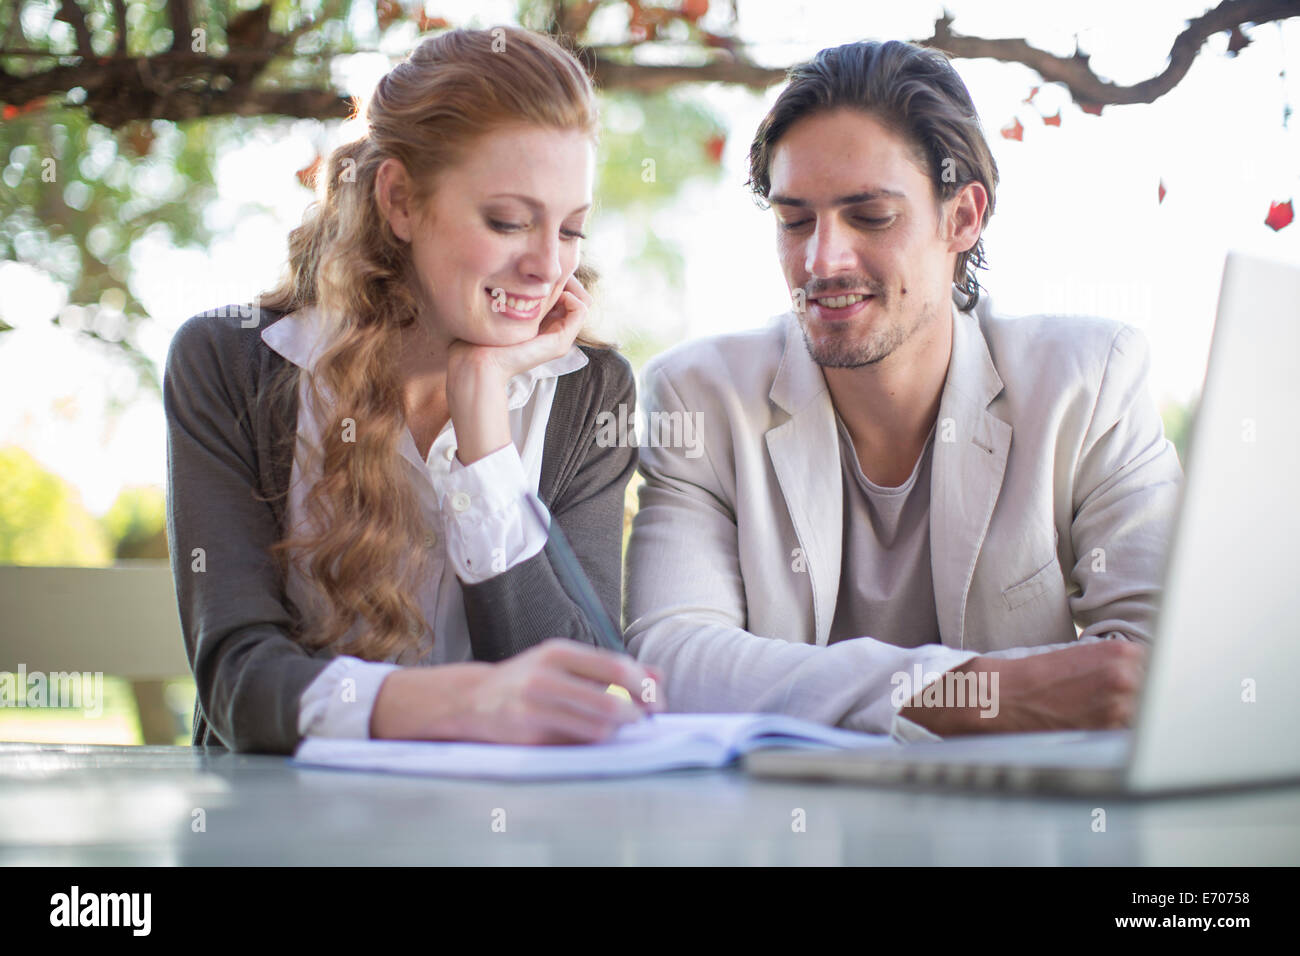 Businessman and female colleague making notes during informal meeting in garden - Stock Image